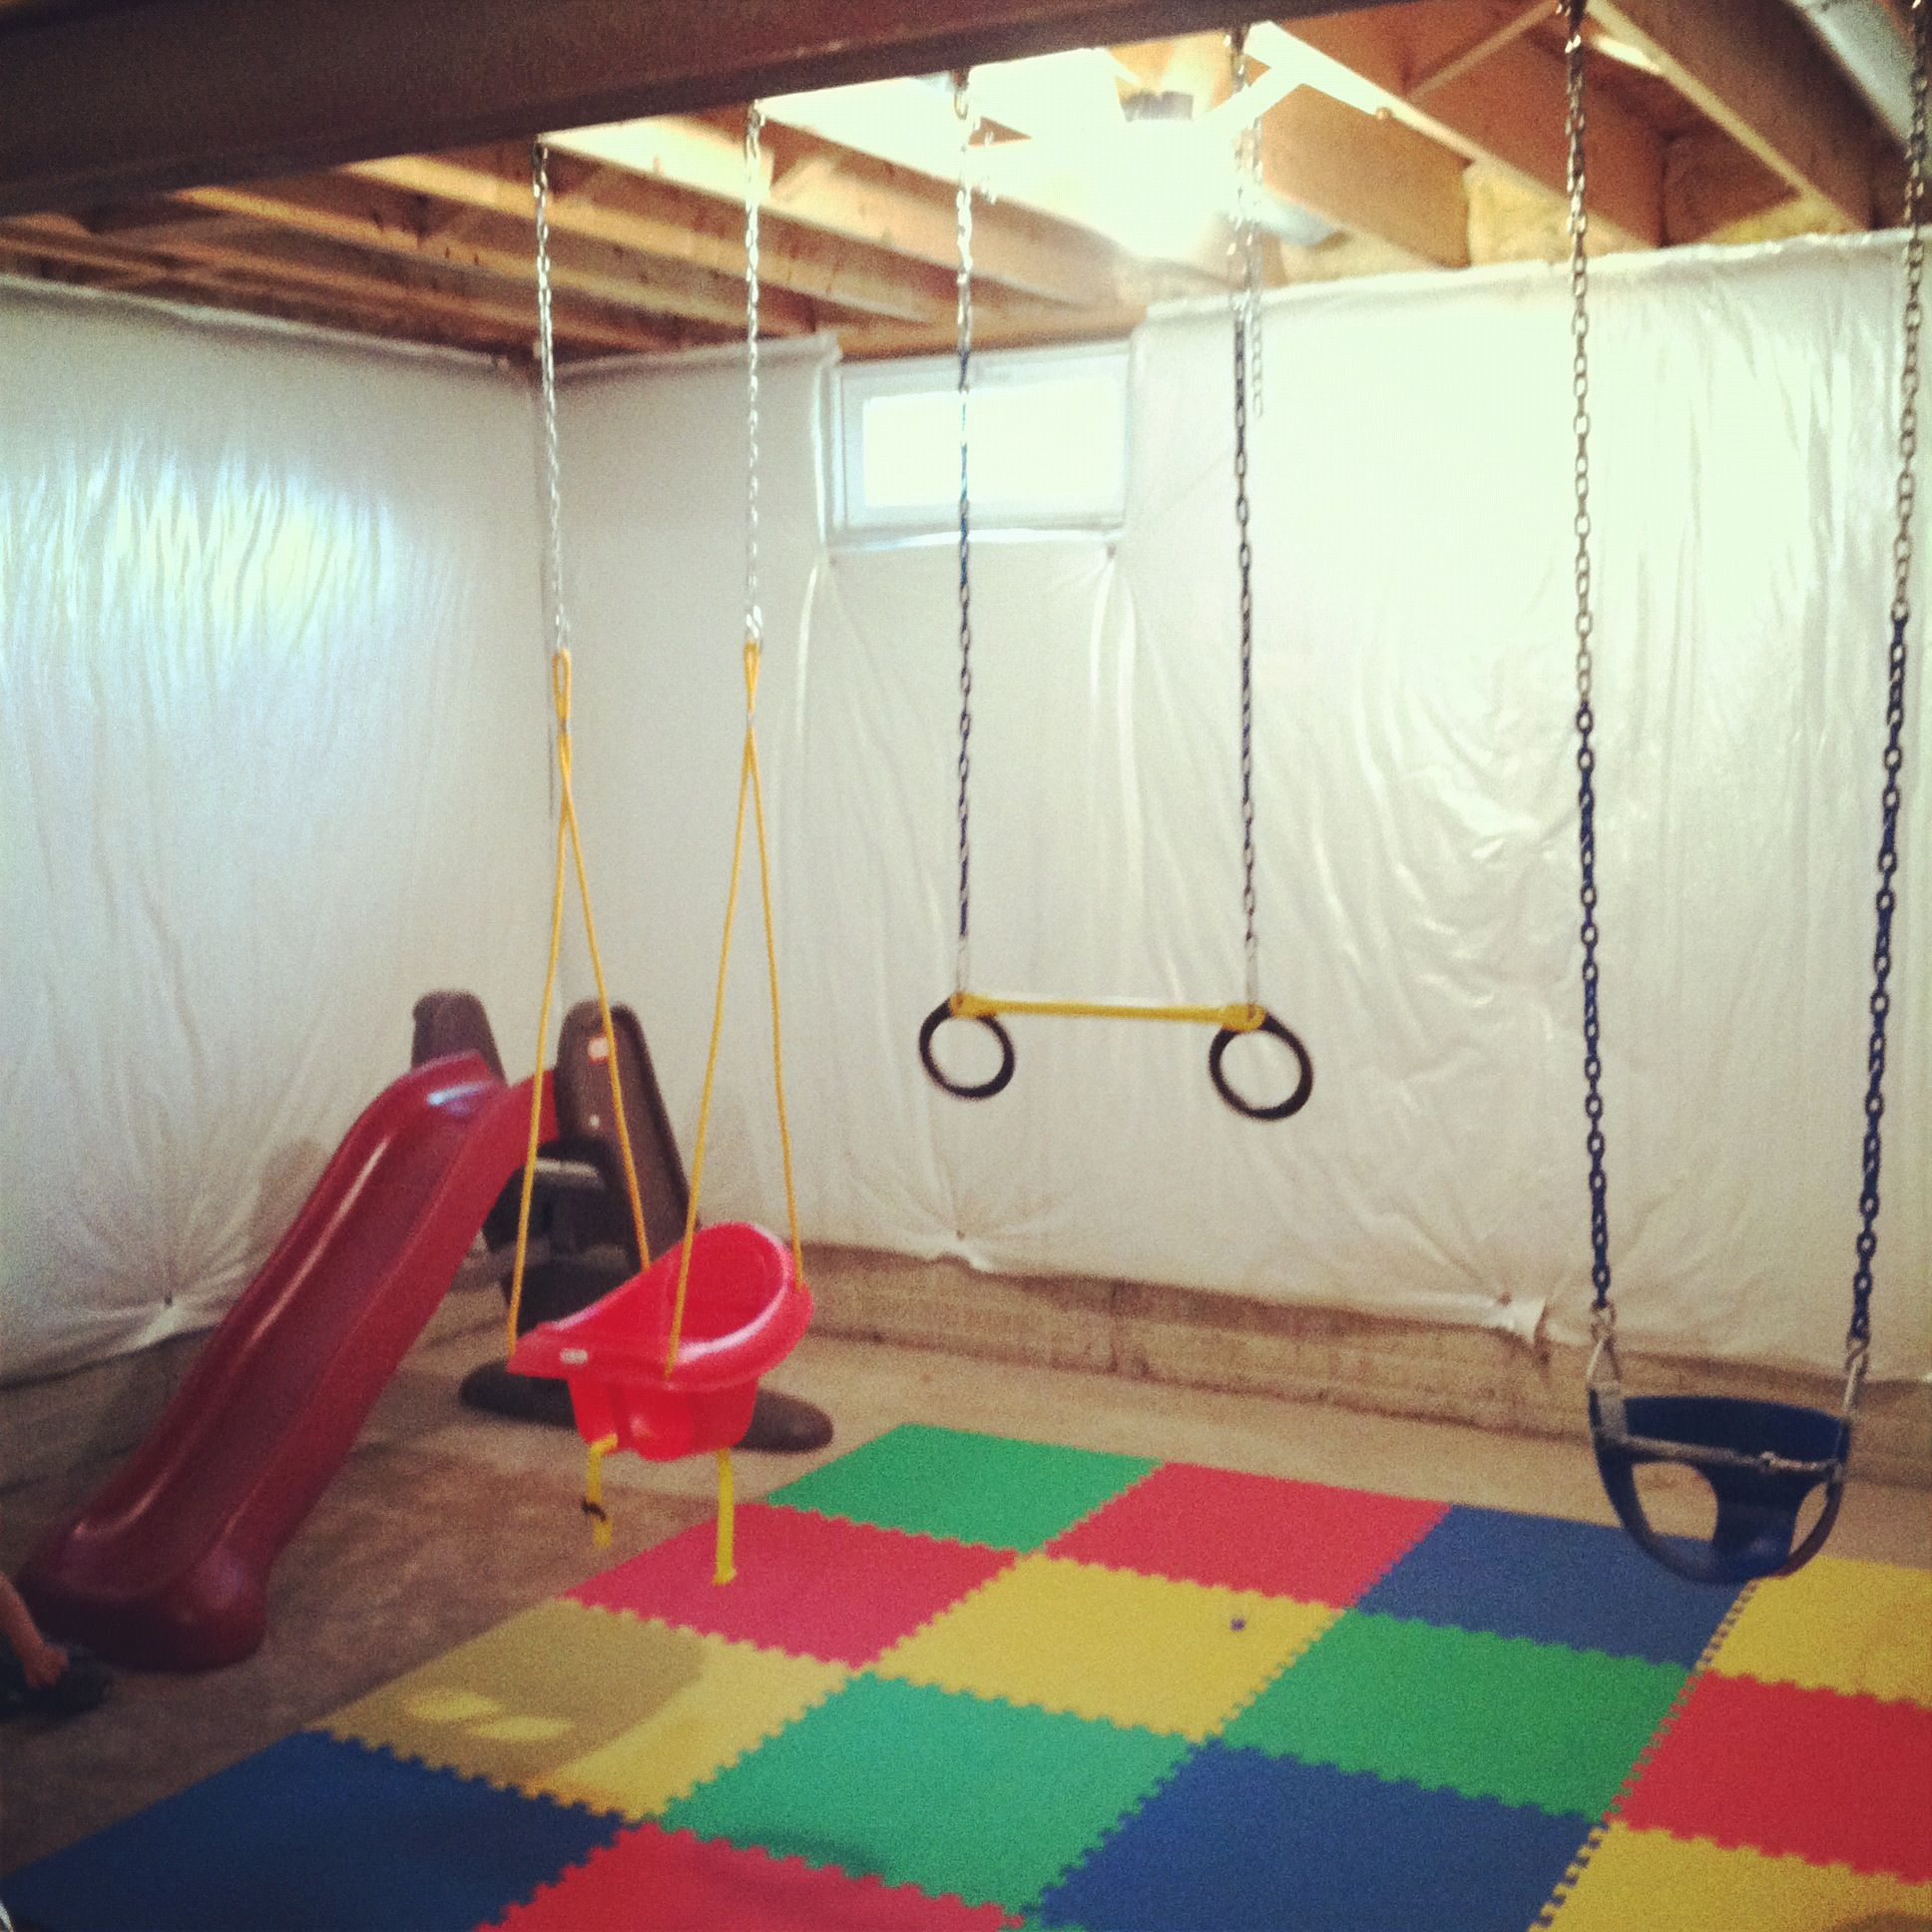 A new take on a playroom for the kids, an Indoor swing set! Cost ...